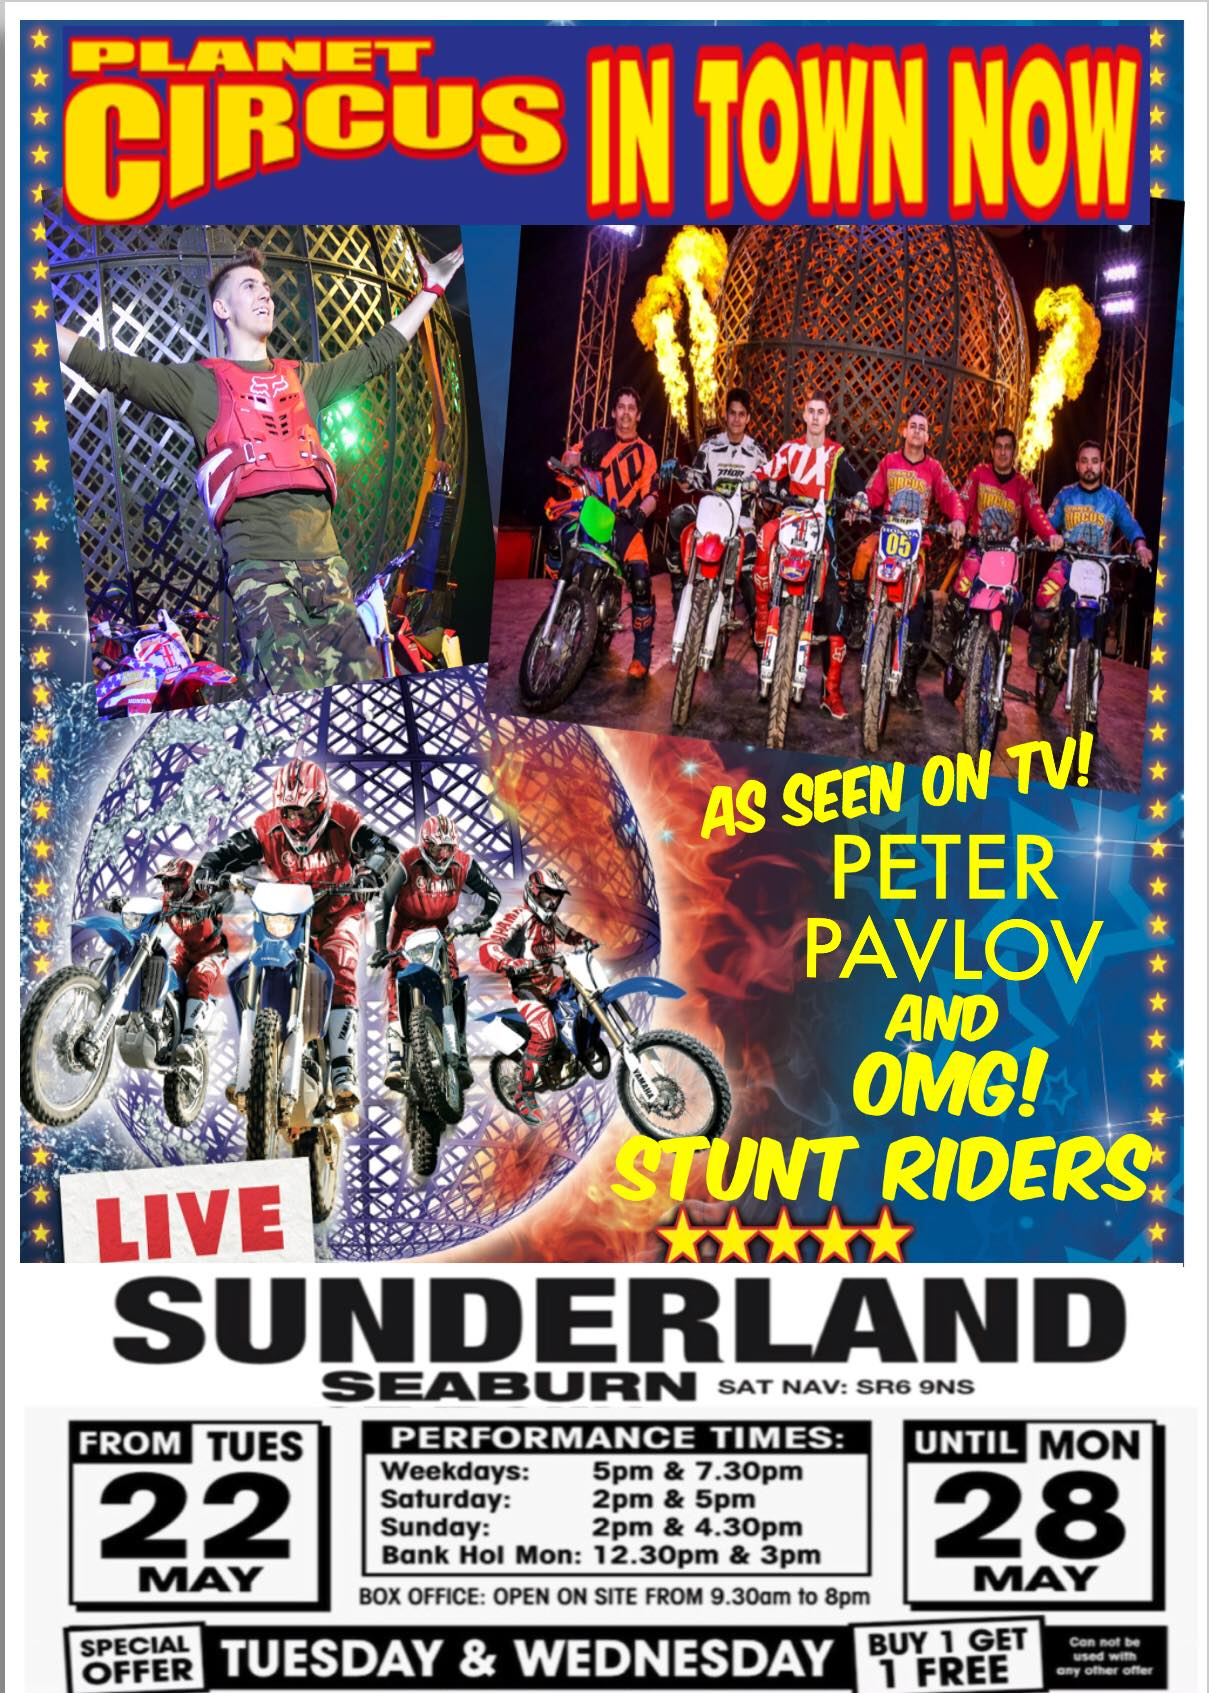 Planet Circus Seaburn Recreation Park Sunderland SR6